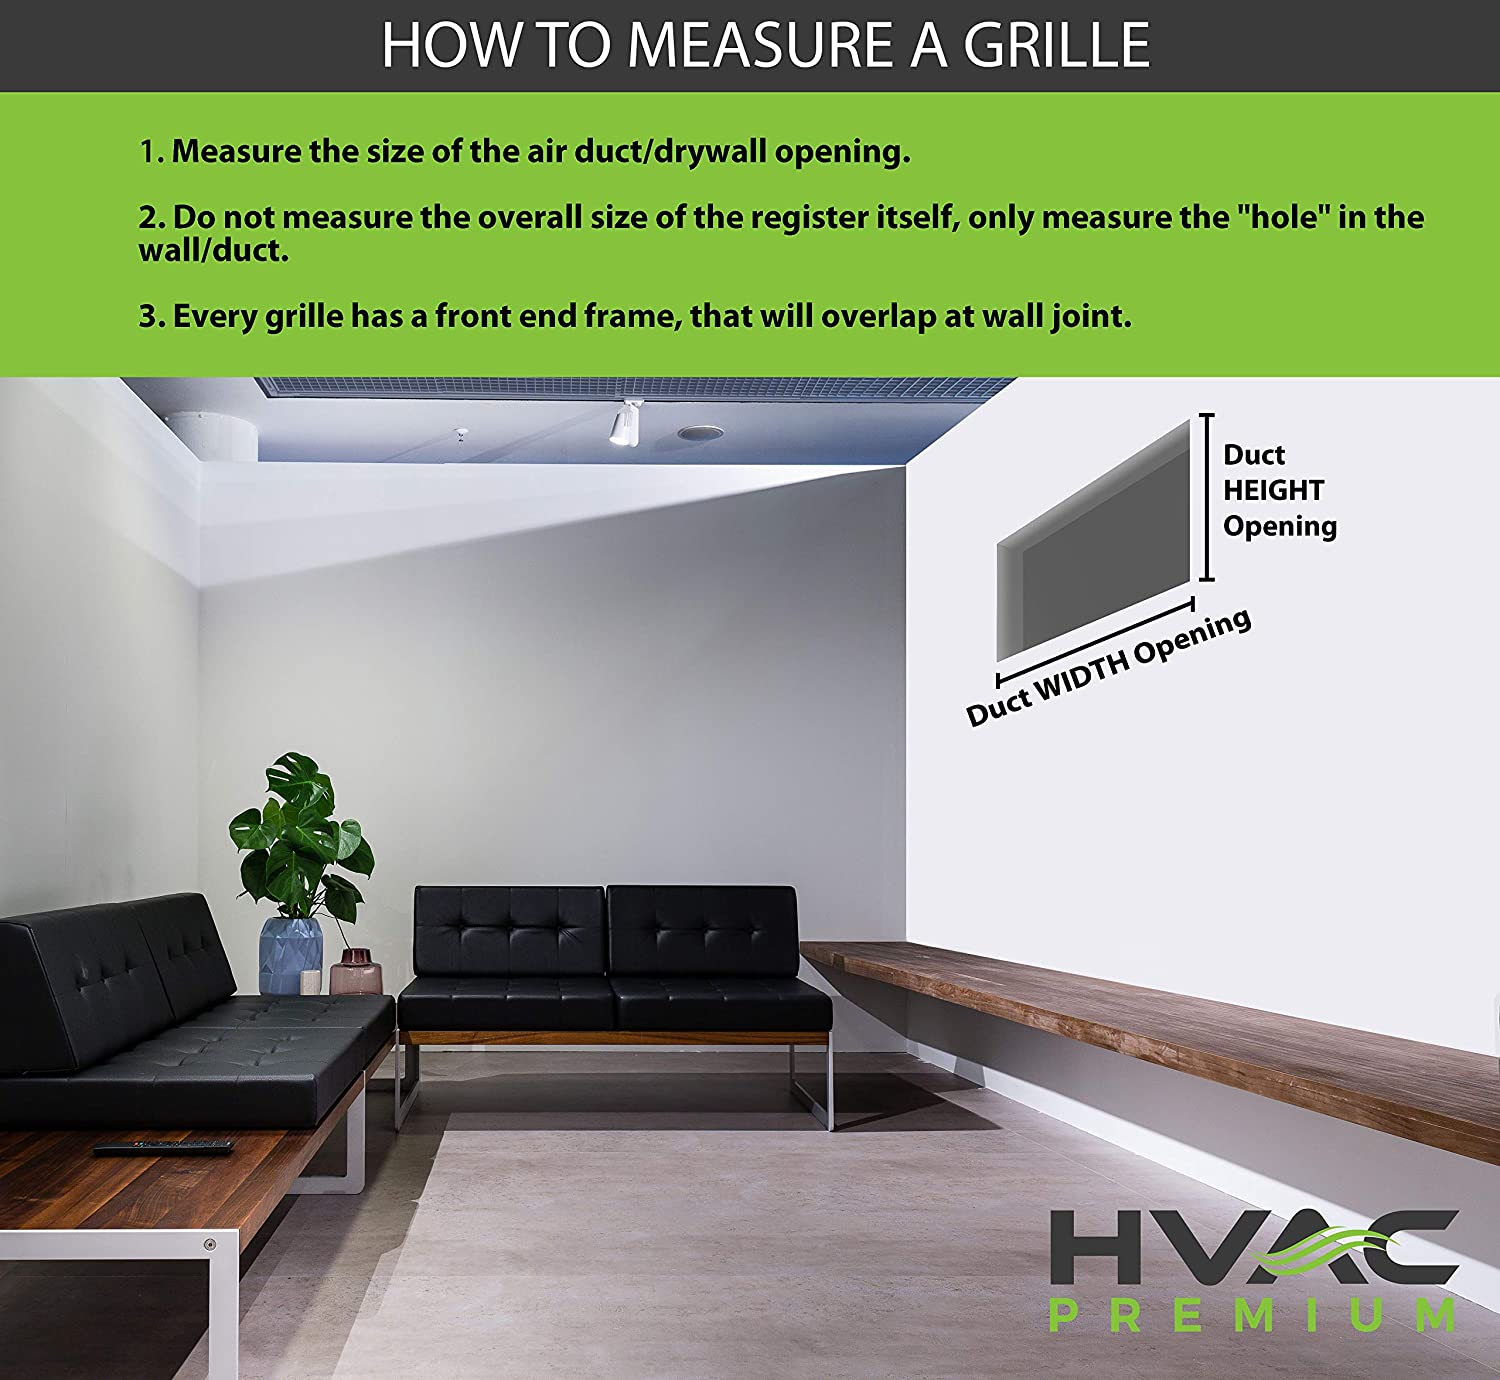 Grille Register Outer Dimensions: 15.75w X 9.75h HVAC Vent Cover Sidewall or Ceiling White 14w X 8h Adjustable AIR Supply Diffuser High Airflow